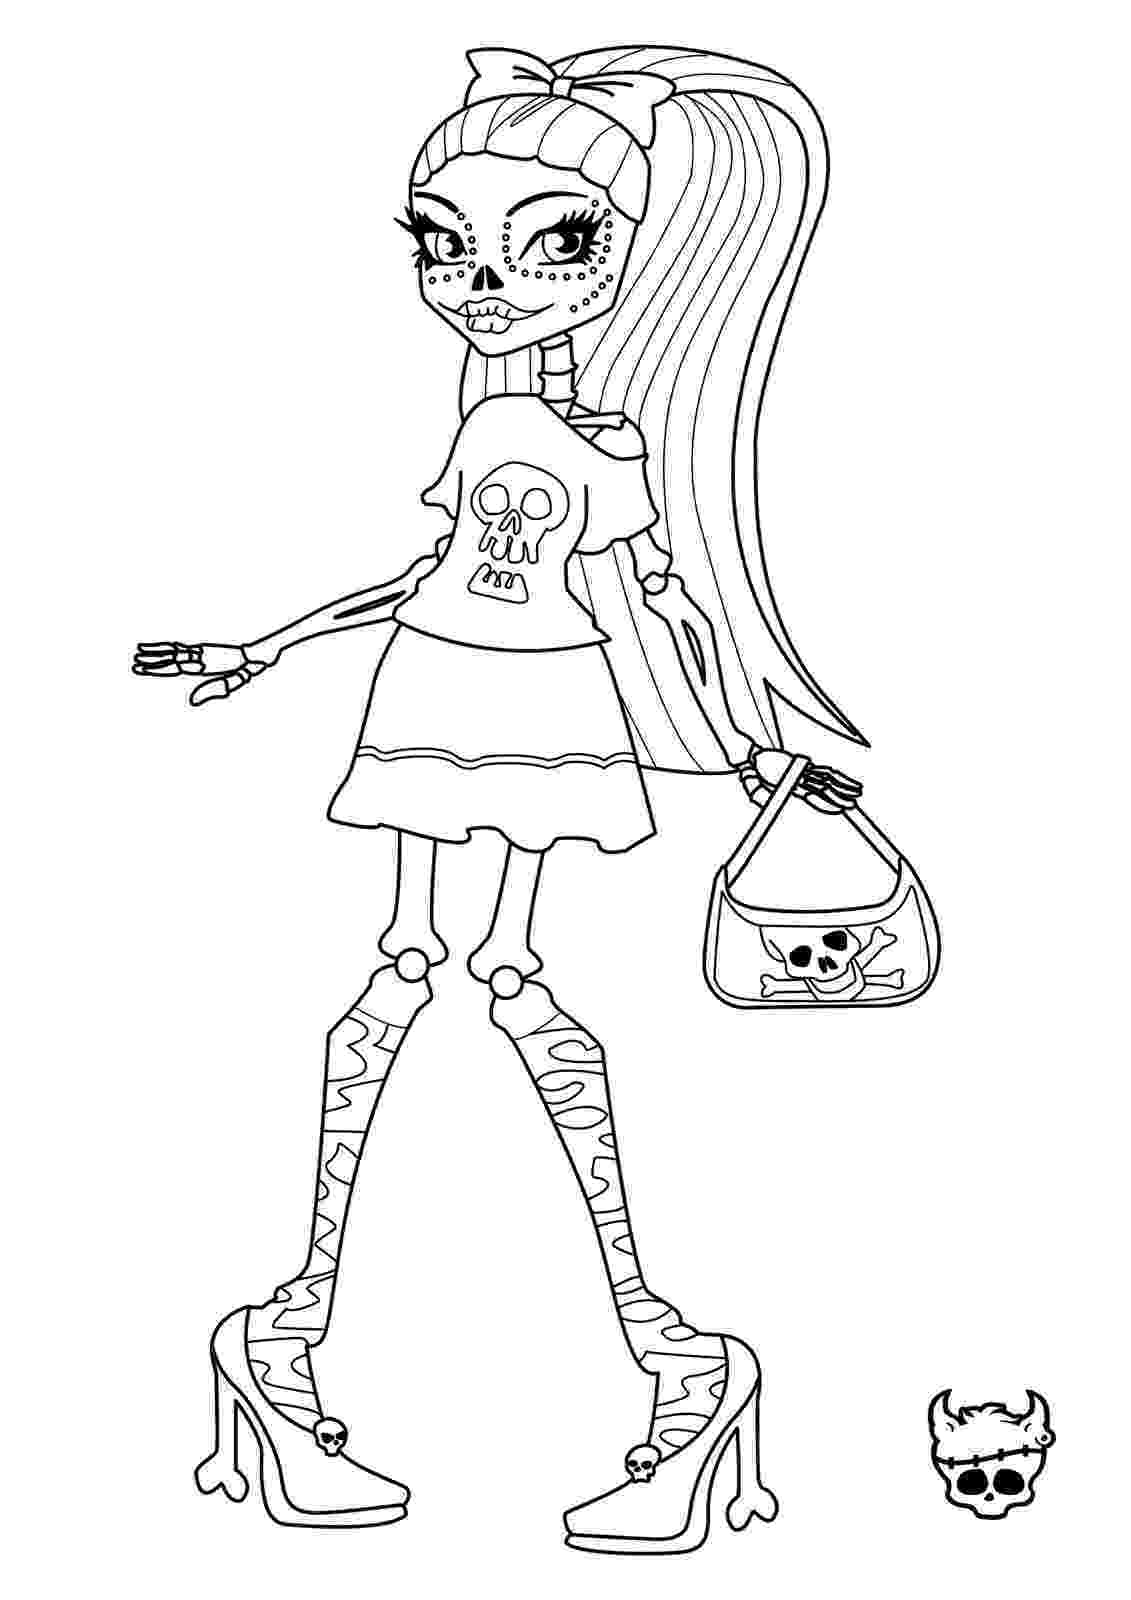 monster high colouring sheets monster high coloring pages getcoloringpagescom monster high sheets colouring